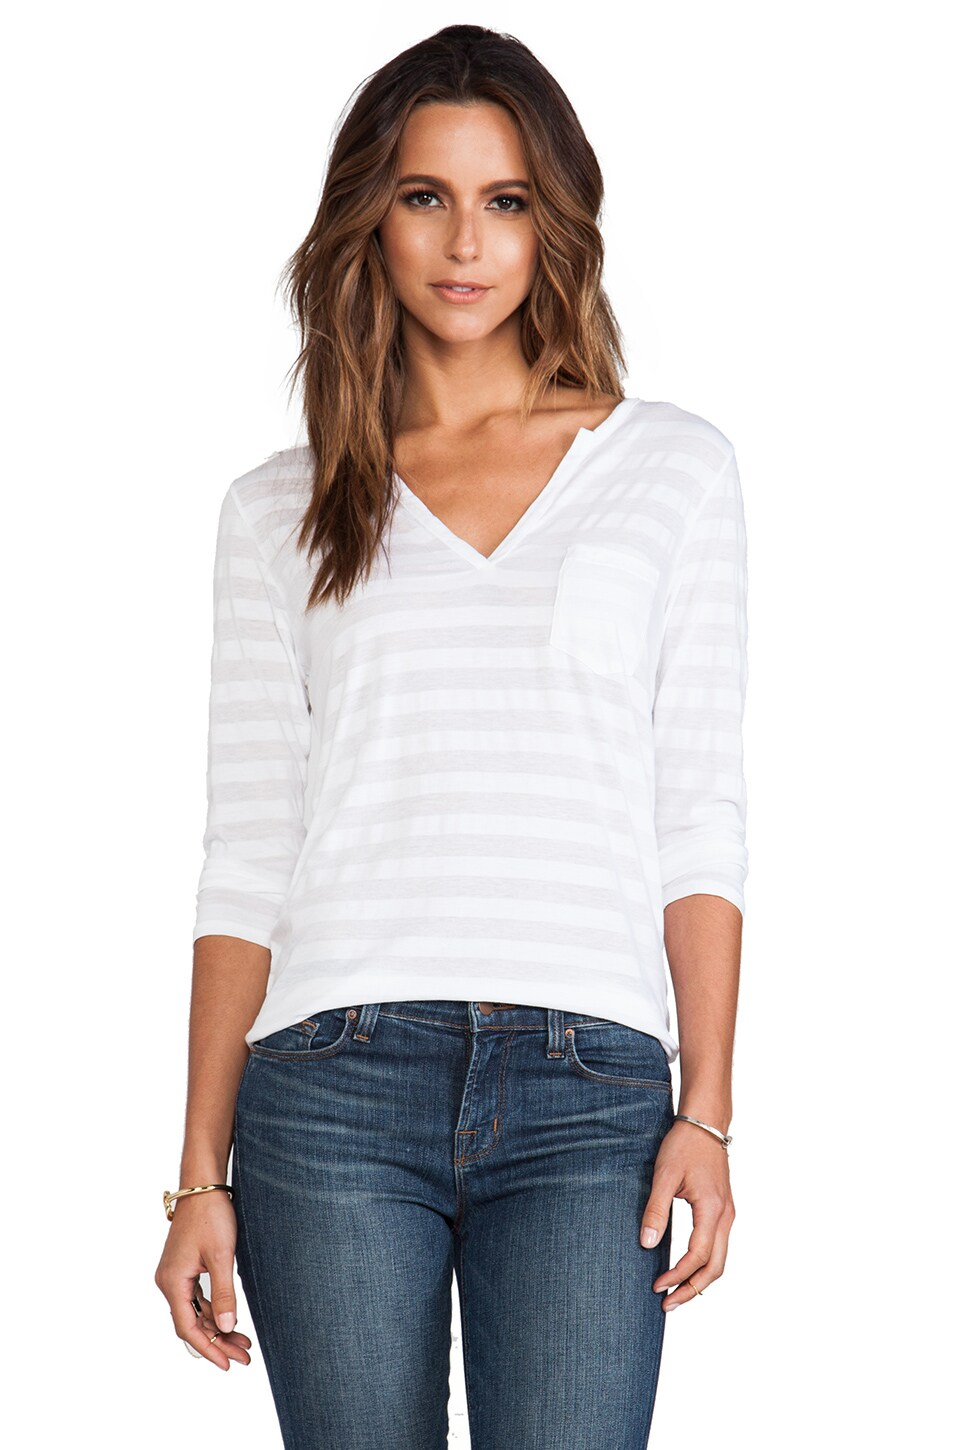 Velvet by Graham & Spencer Trudy Tonal Stripe Top in White